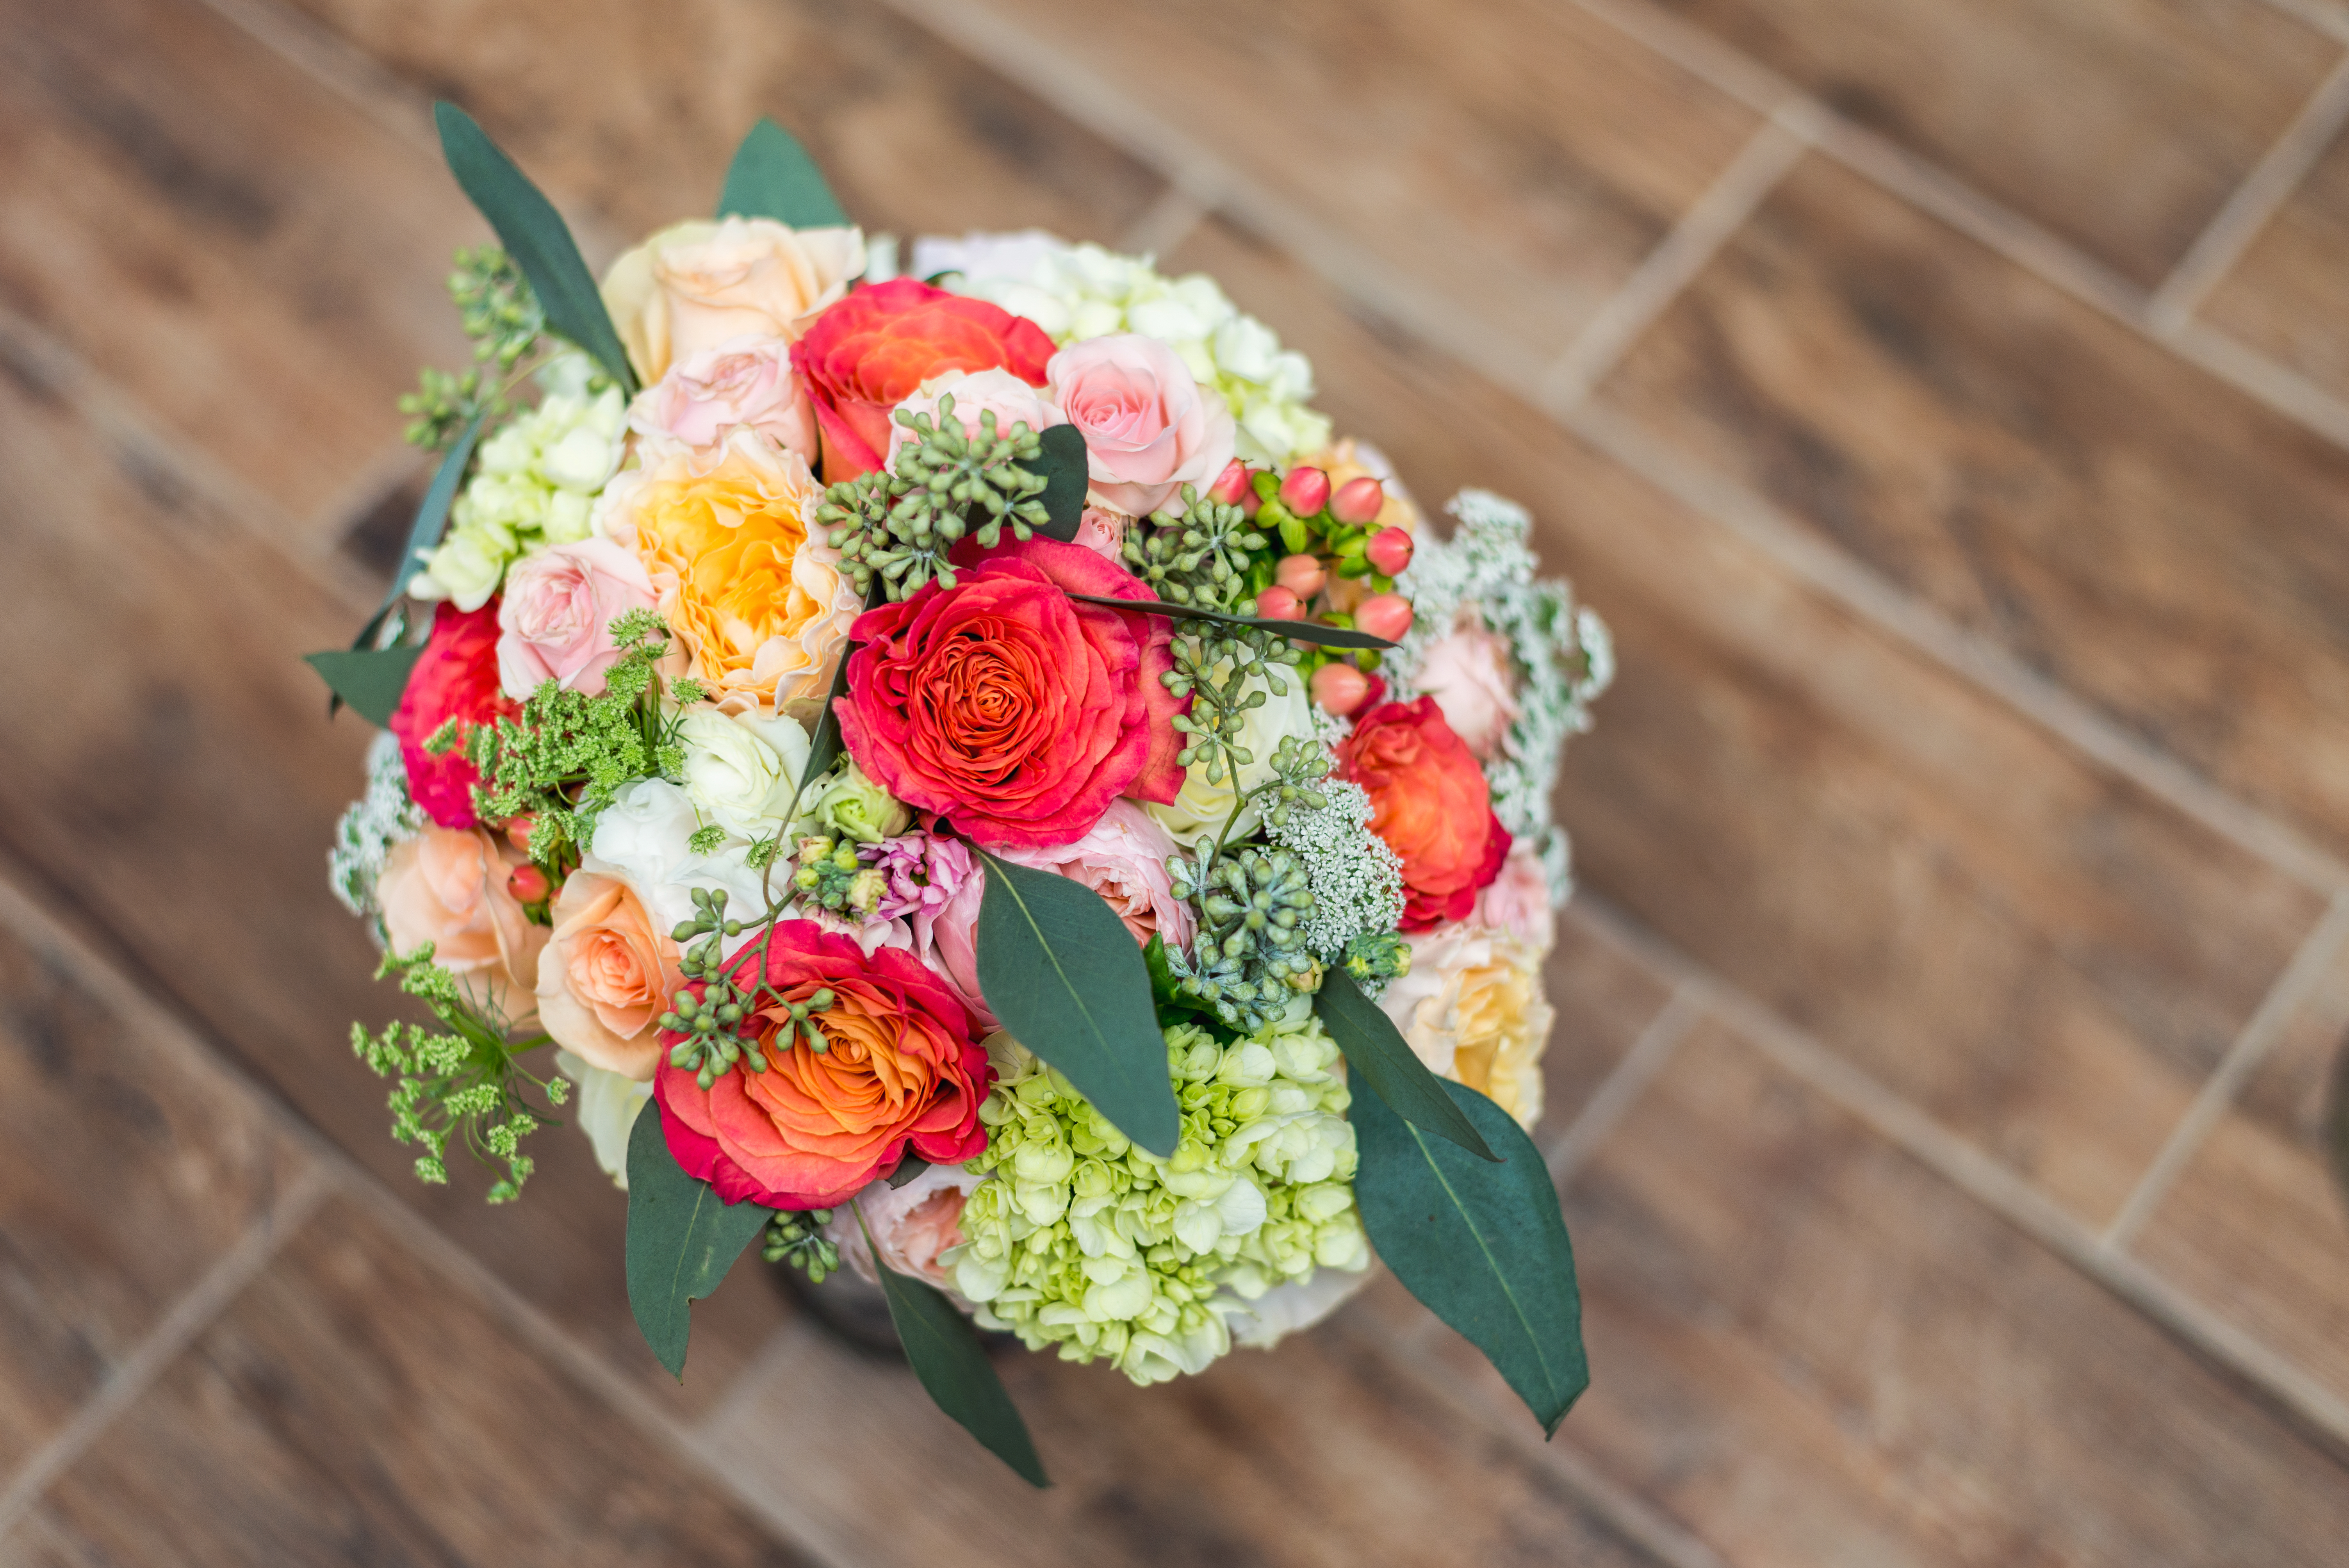 Wedding flower bouquets find the perfect one for you memory shot if izmirmasajfo